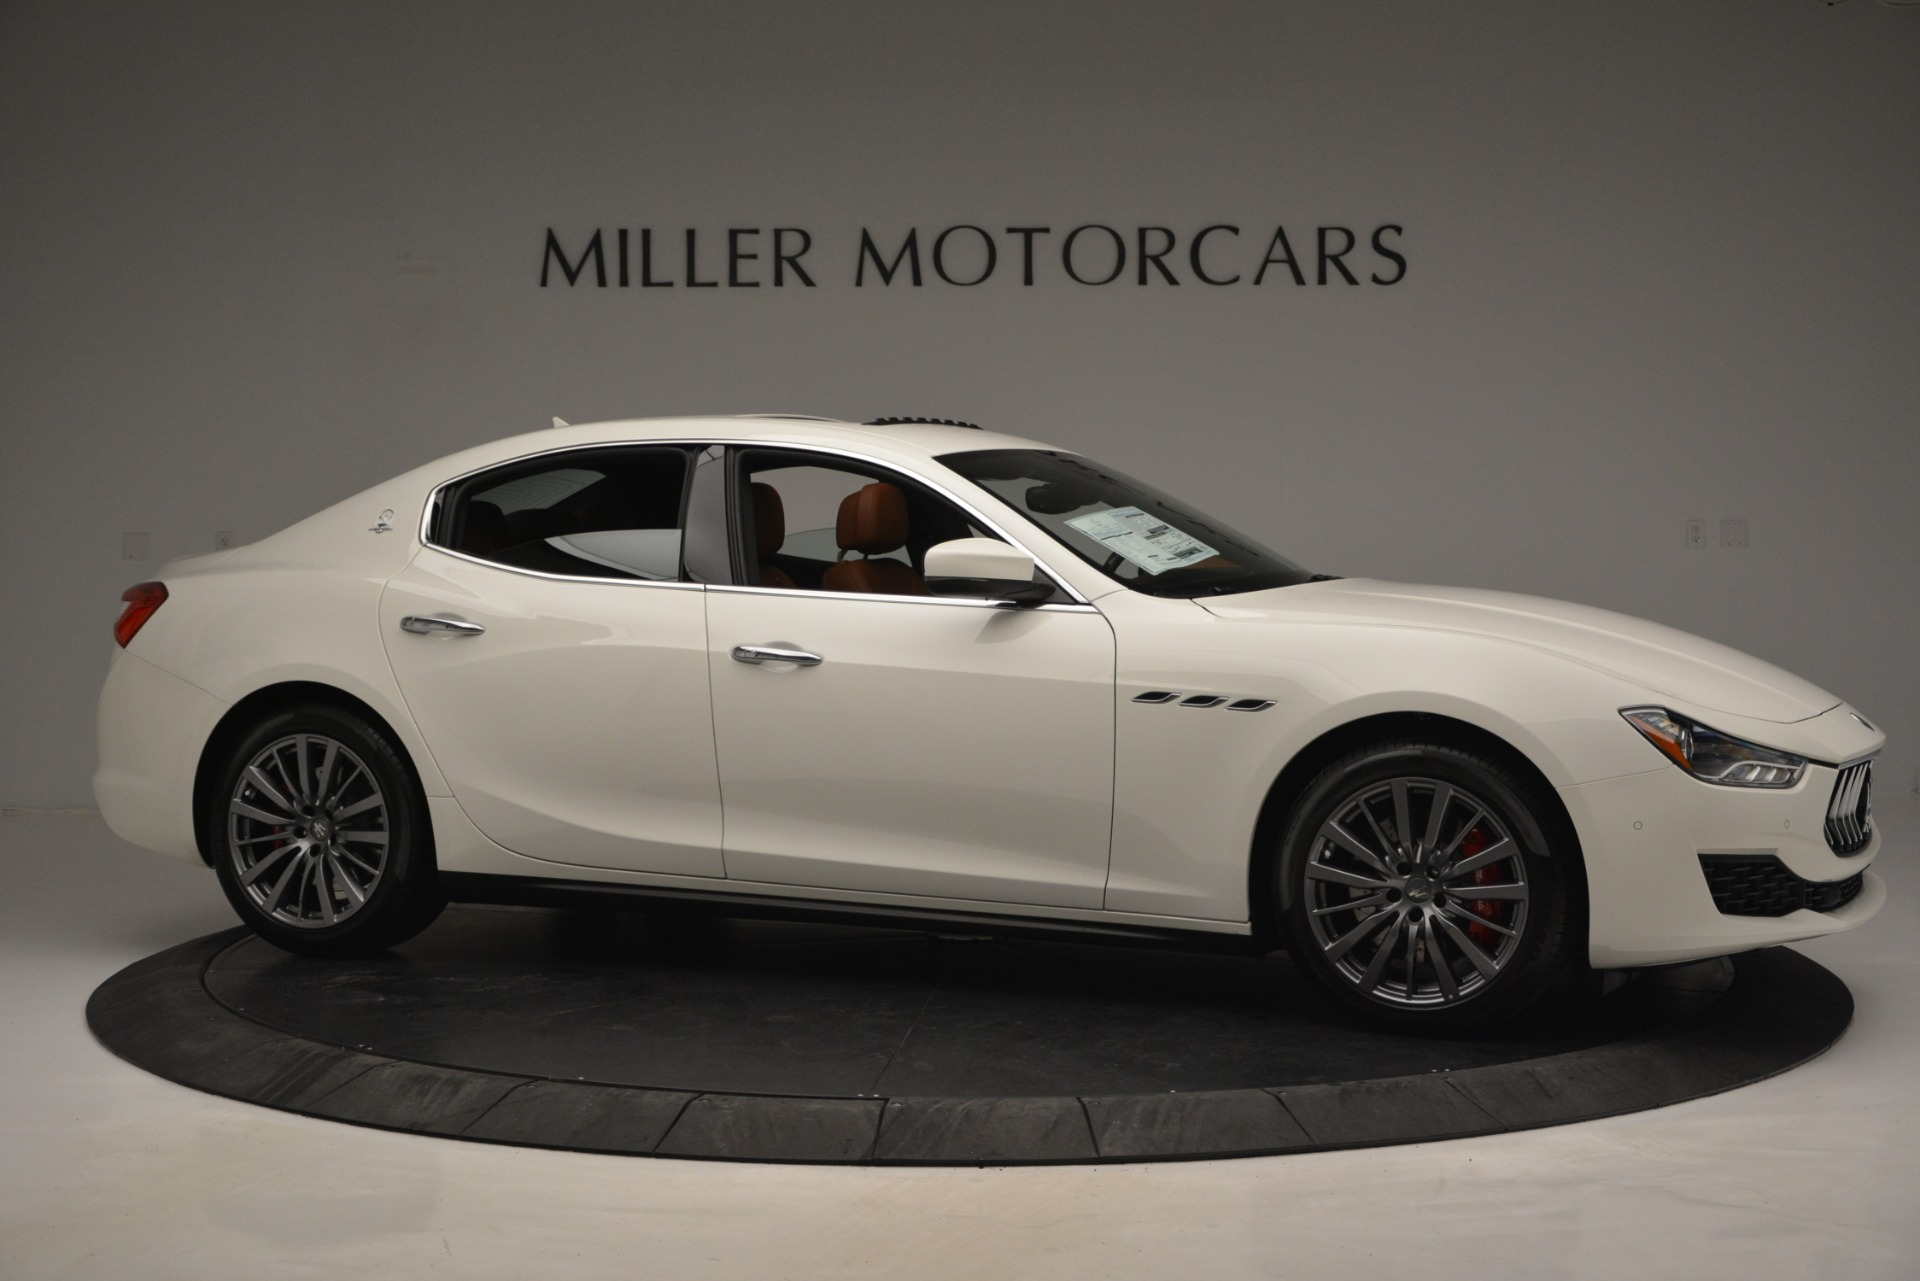 New 2019 Maserati Ghibli S Q4 For Sale In Greenwich, CT. Alfa Romeo of Greenwich, M2245 2795_p13